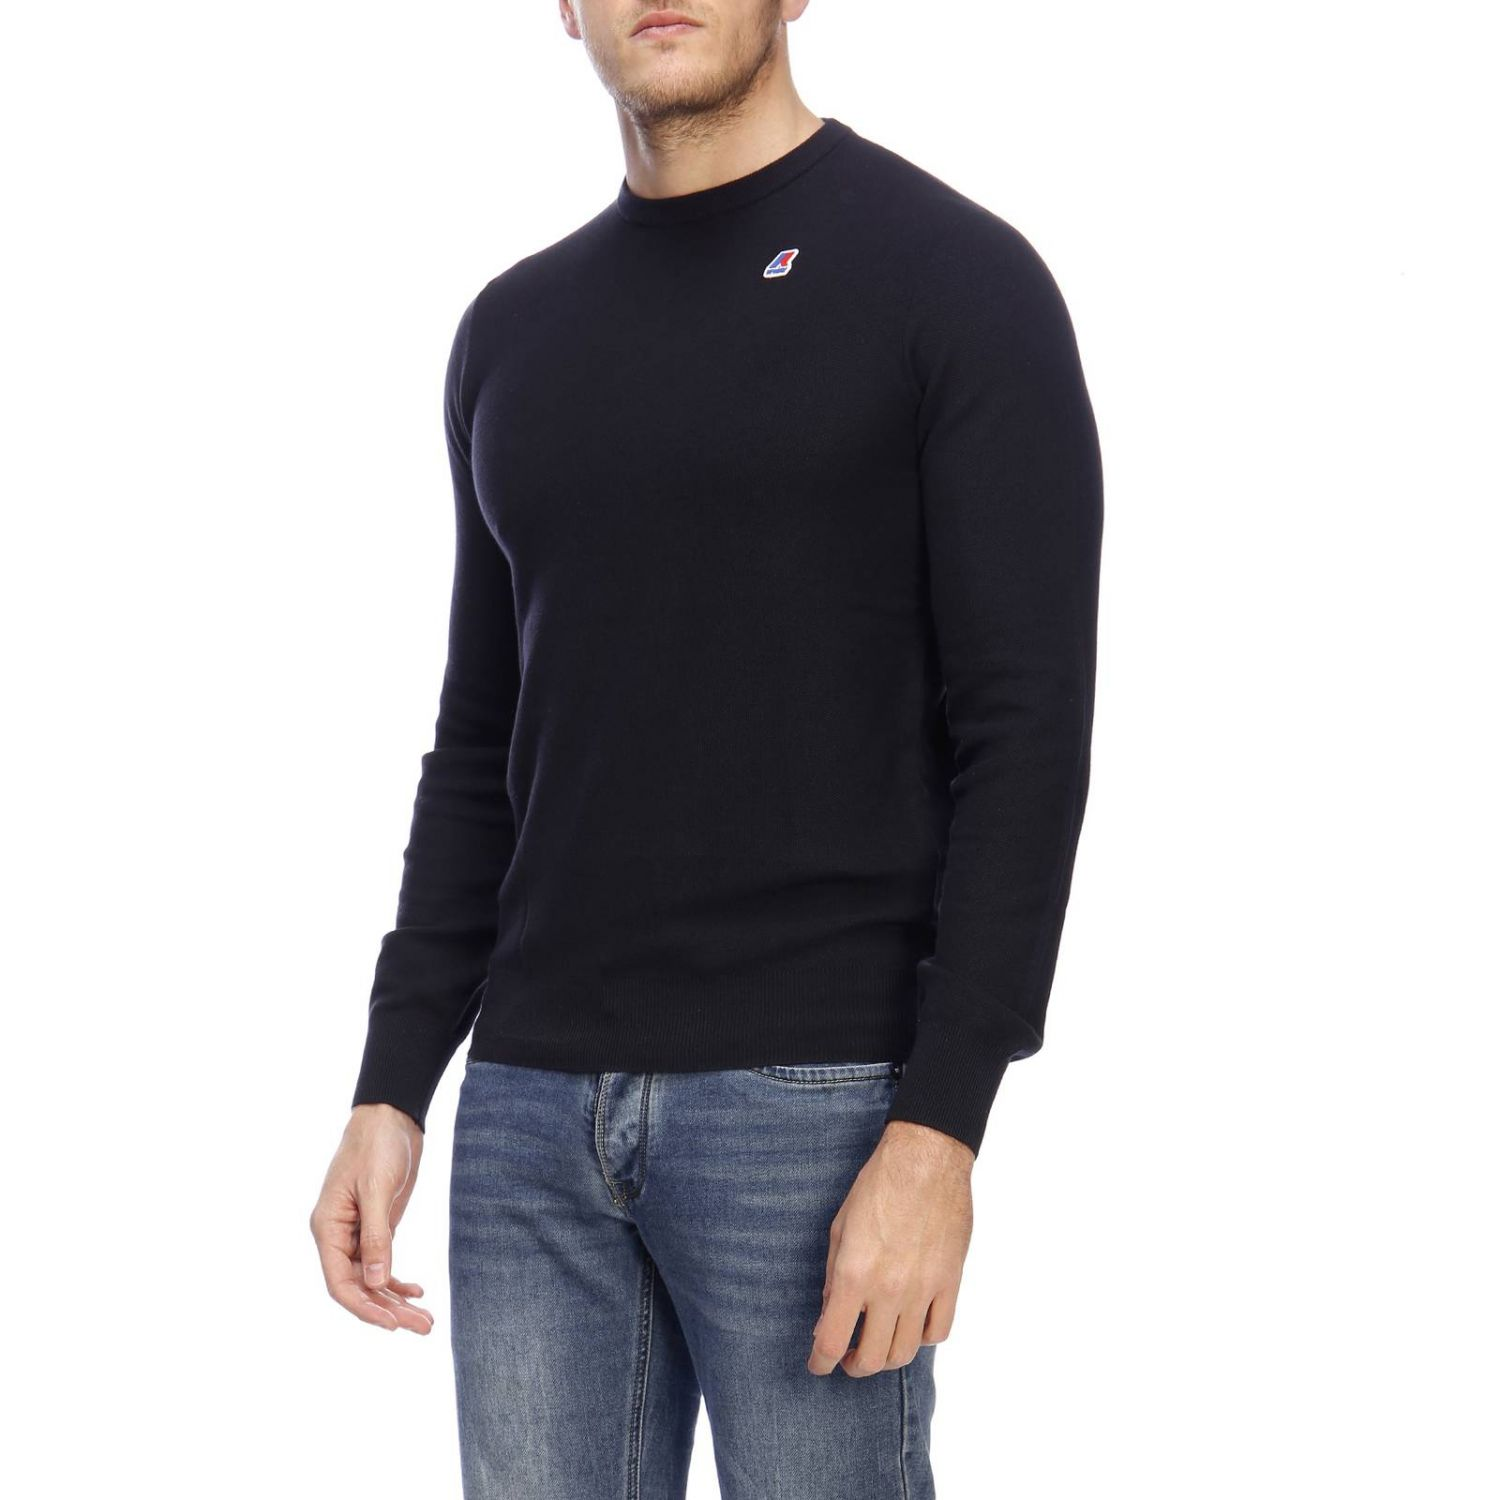 Sweater men K-way blue 2